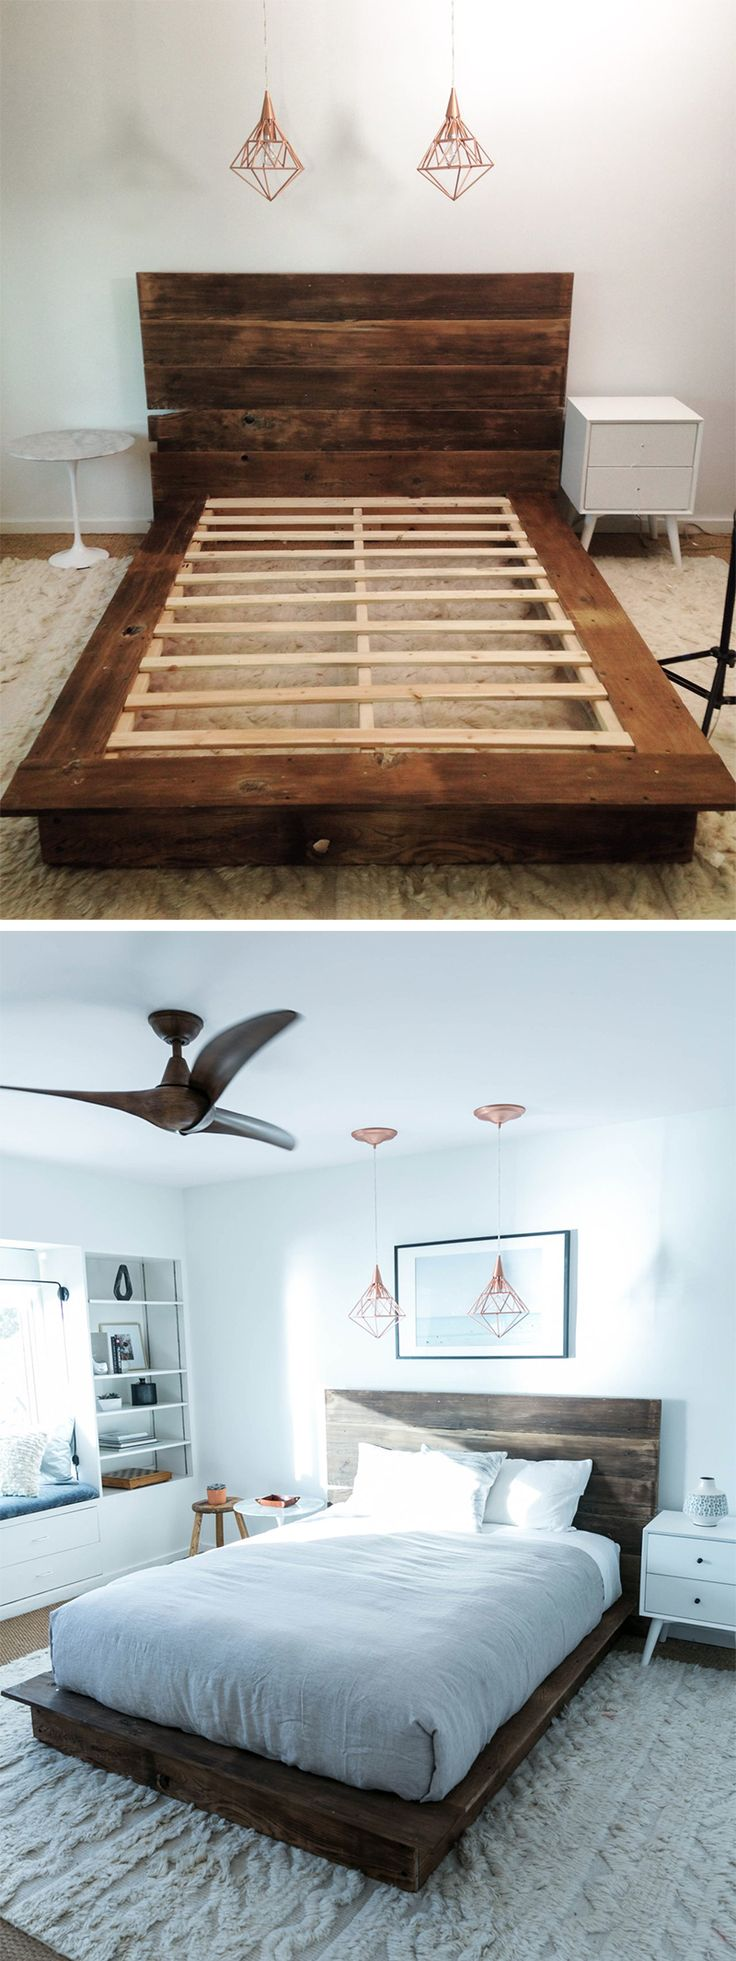 Bed frame design ideas - Diy Reclaimed Wood Platform Bed